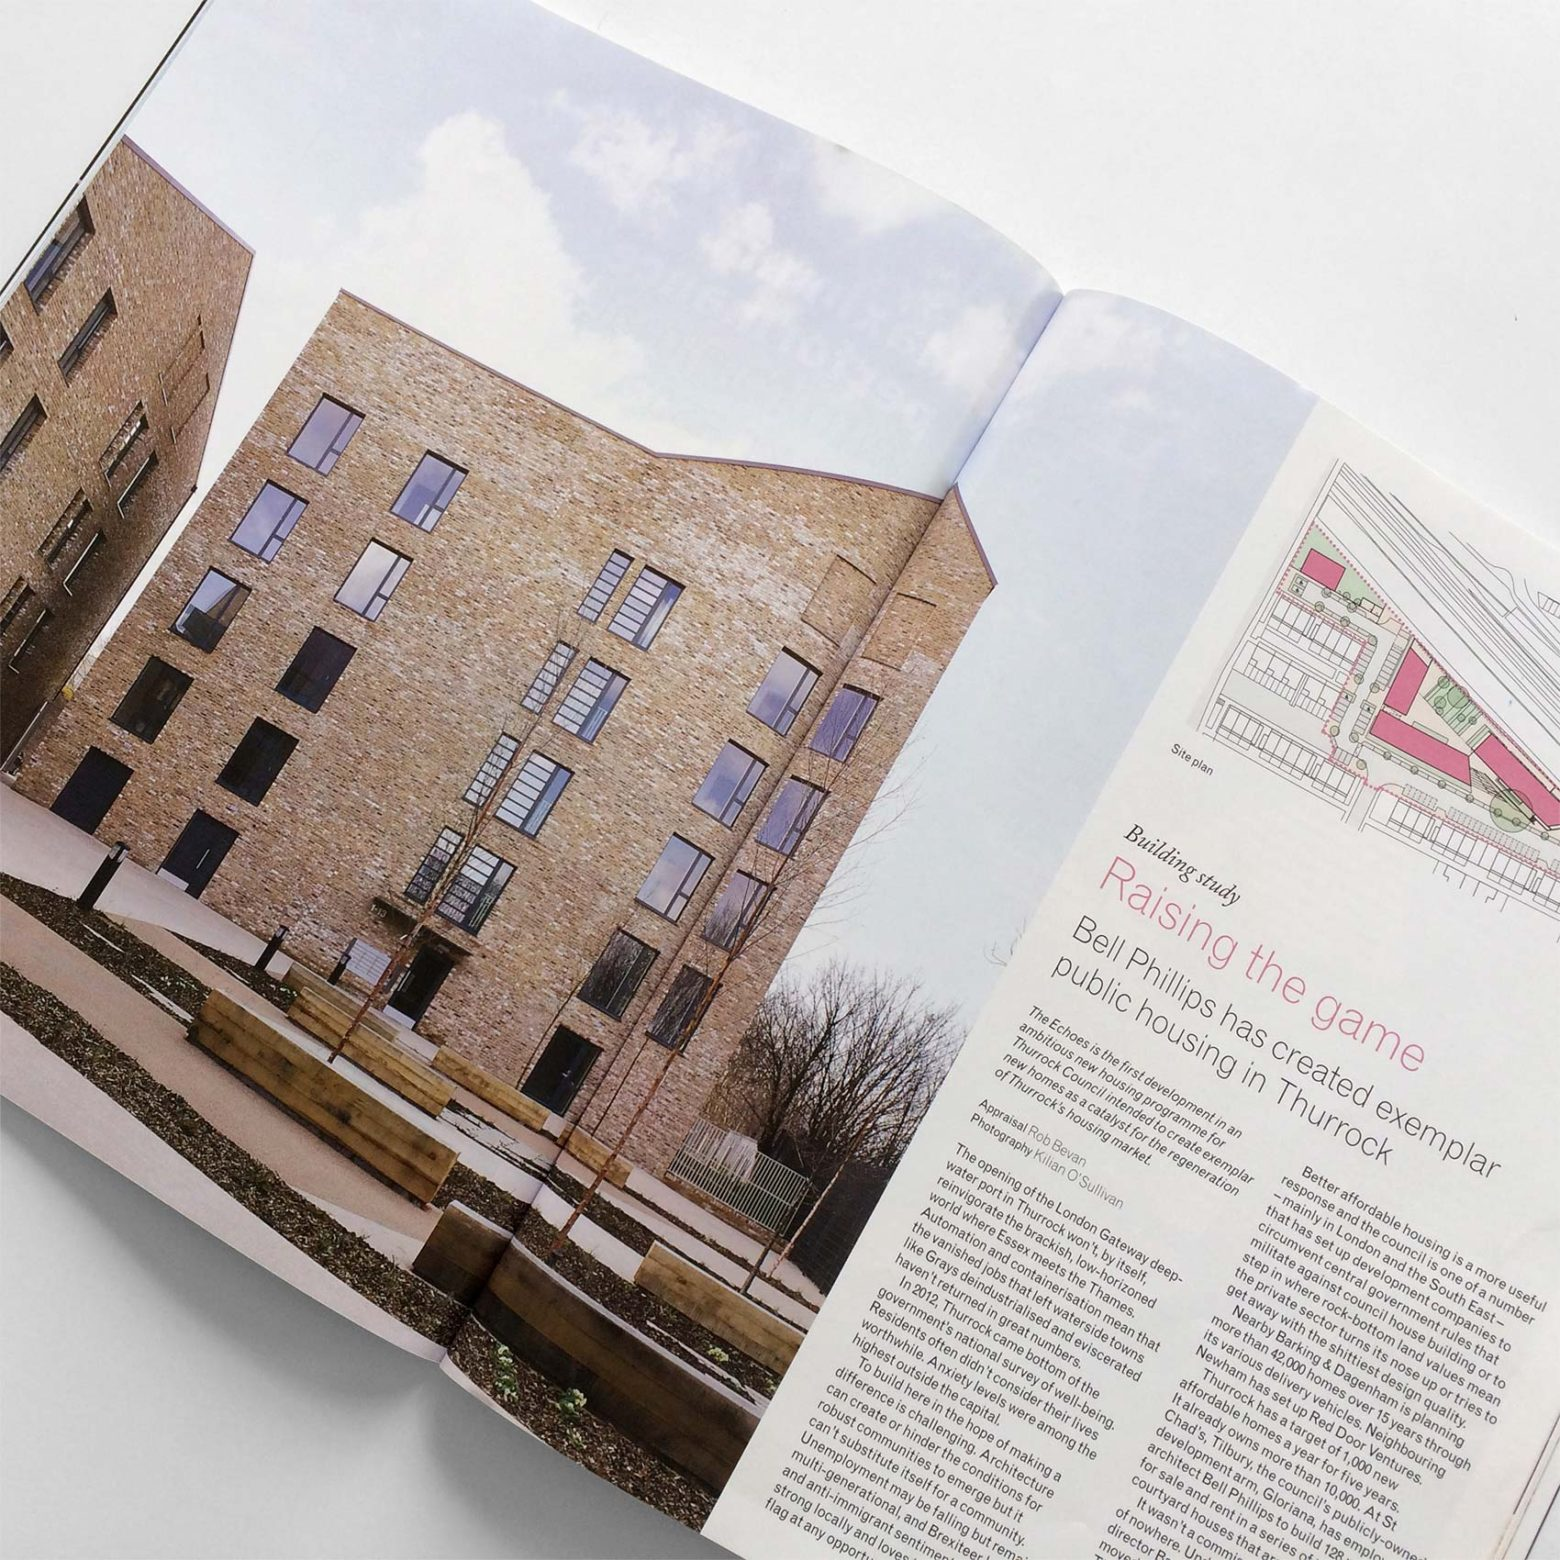 The Echoes and Bracelet Close feature in The Architects Journal